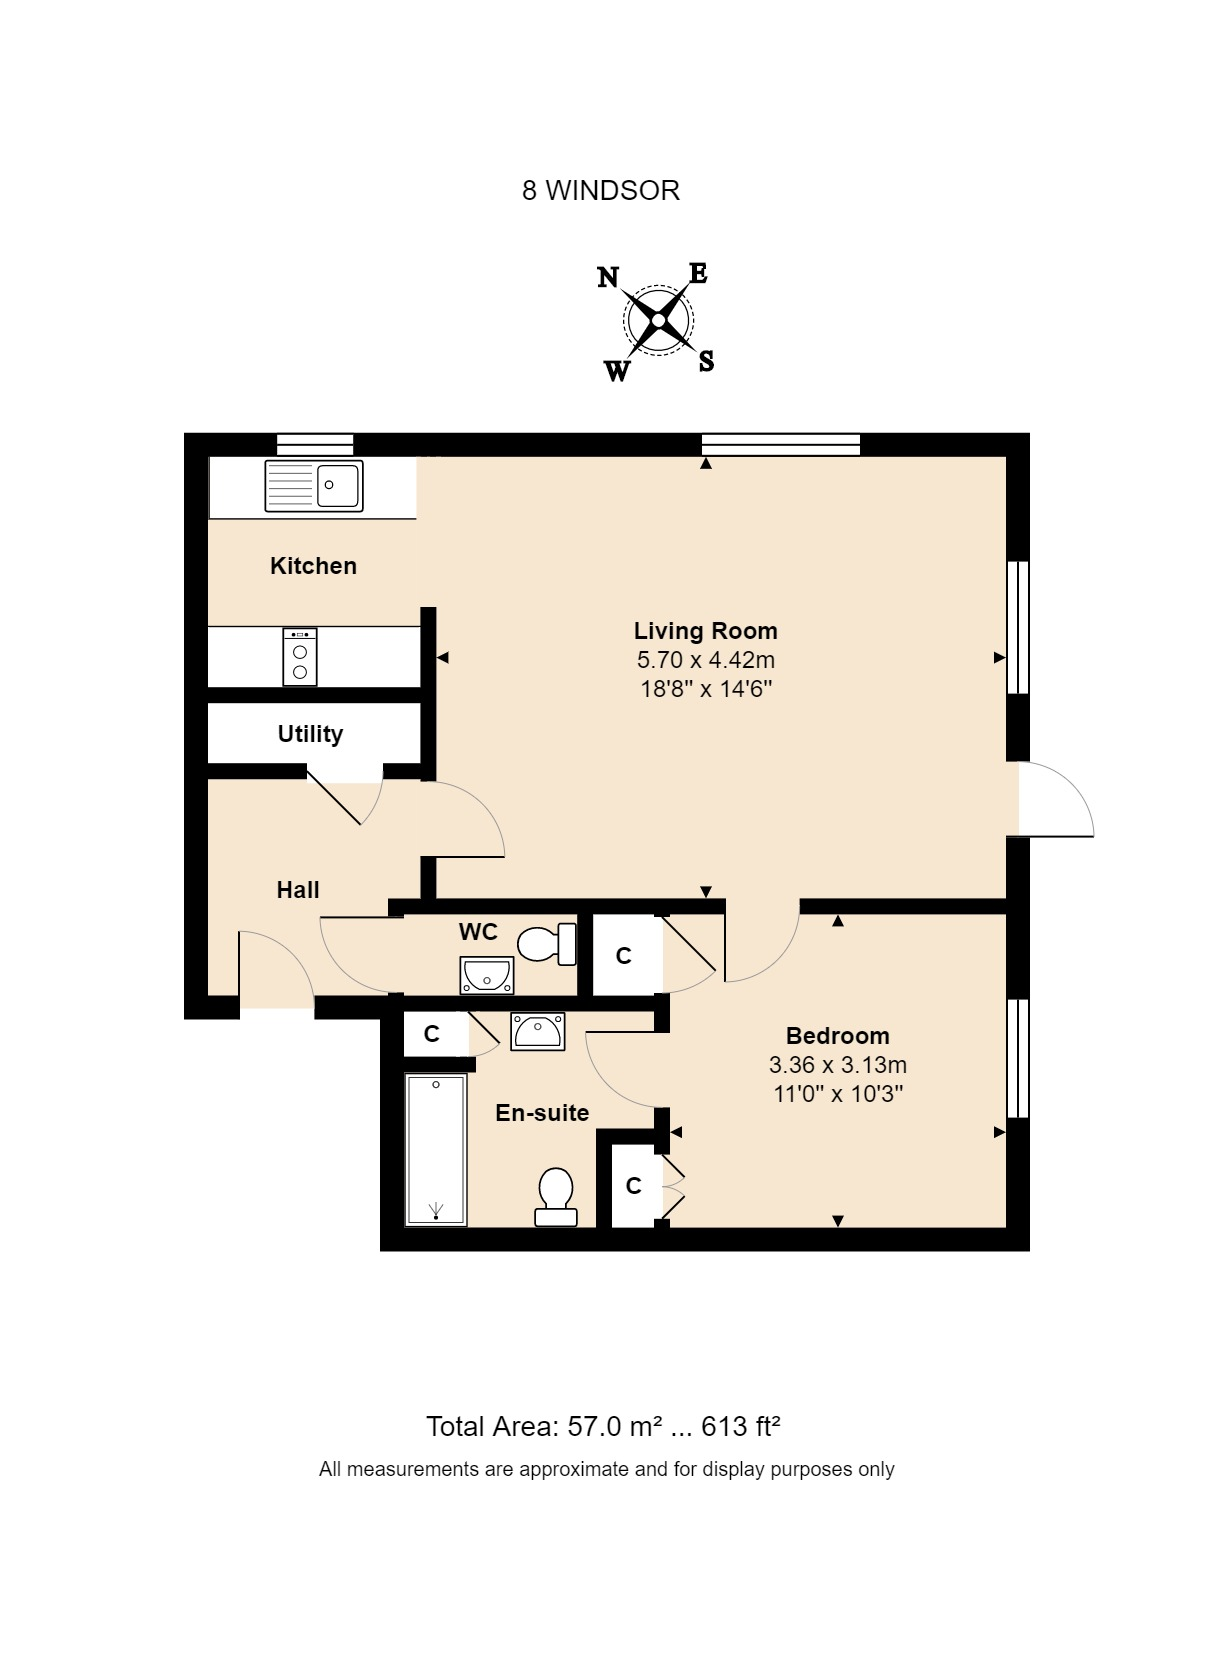 8 Windsor Floorplan